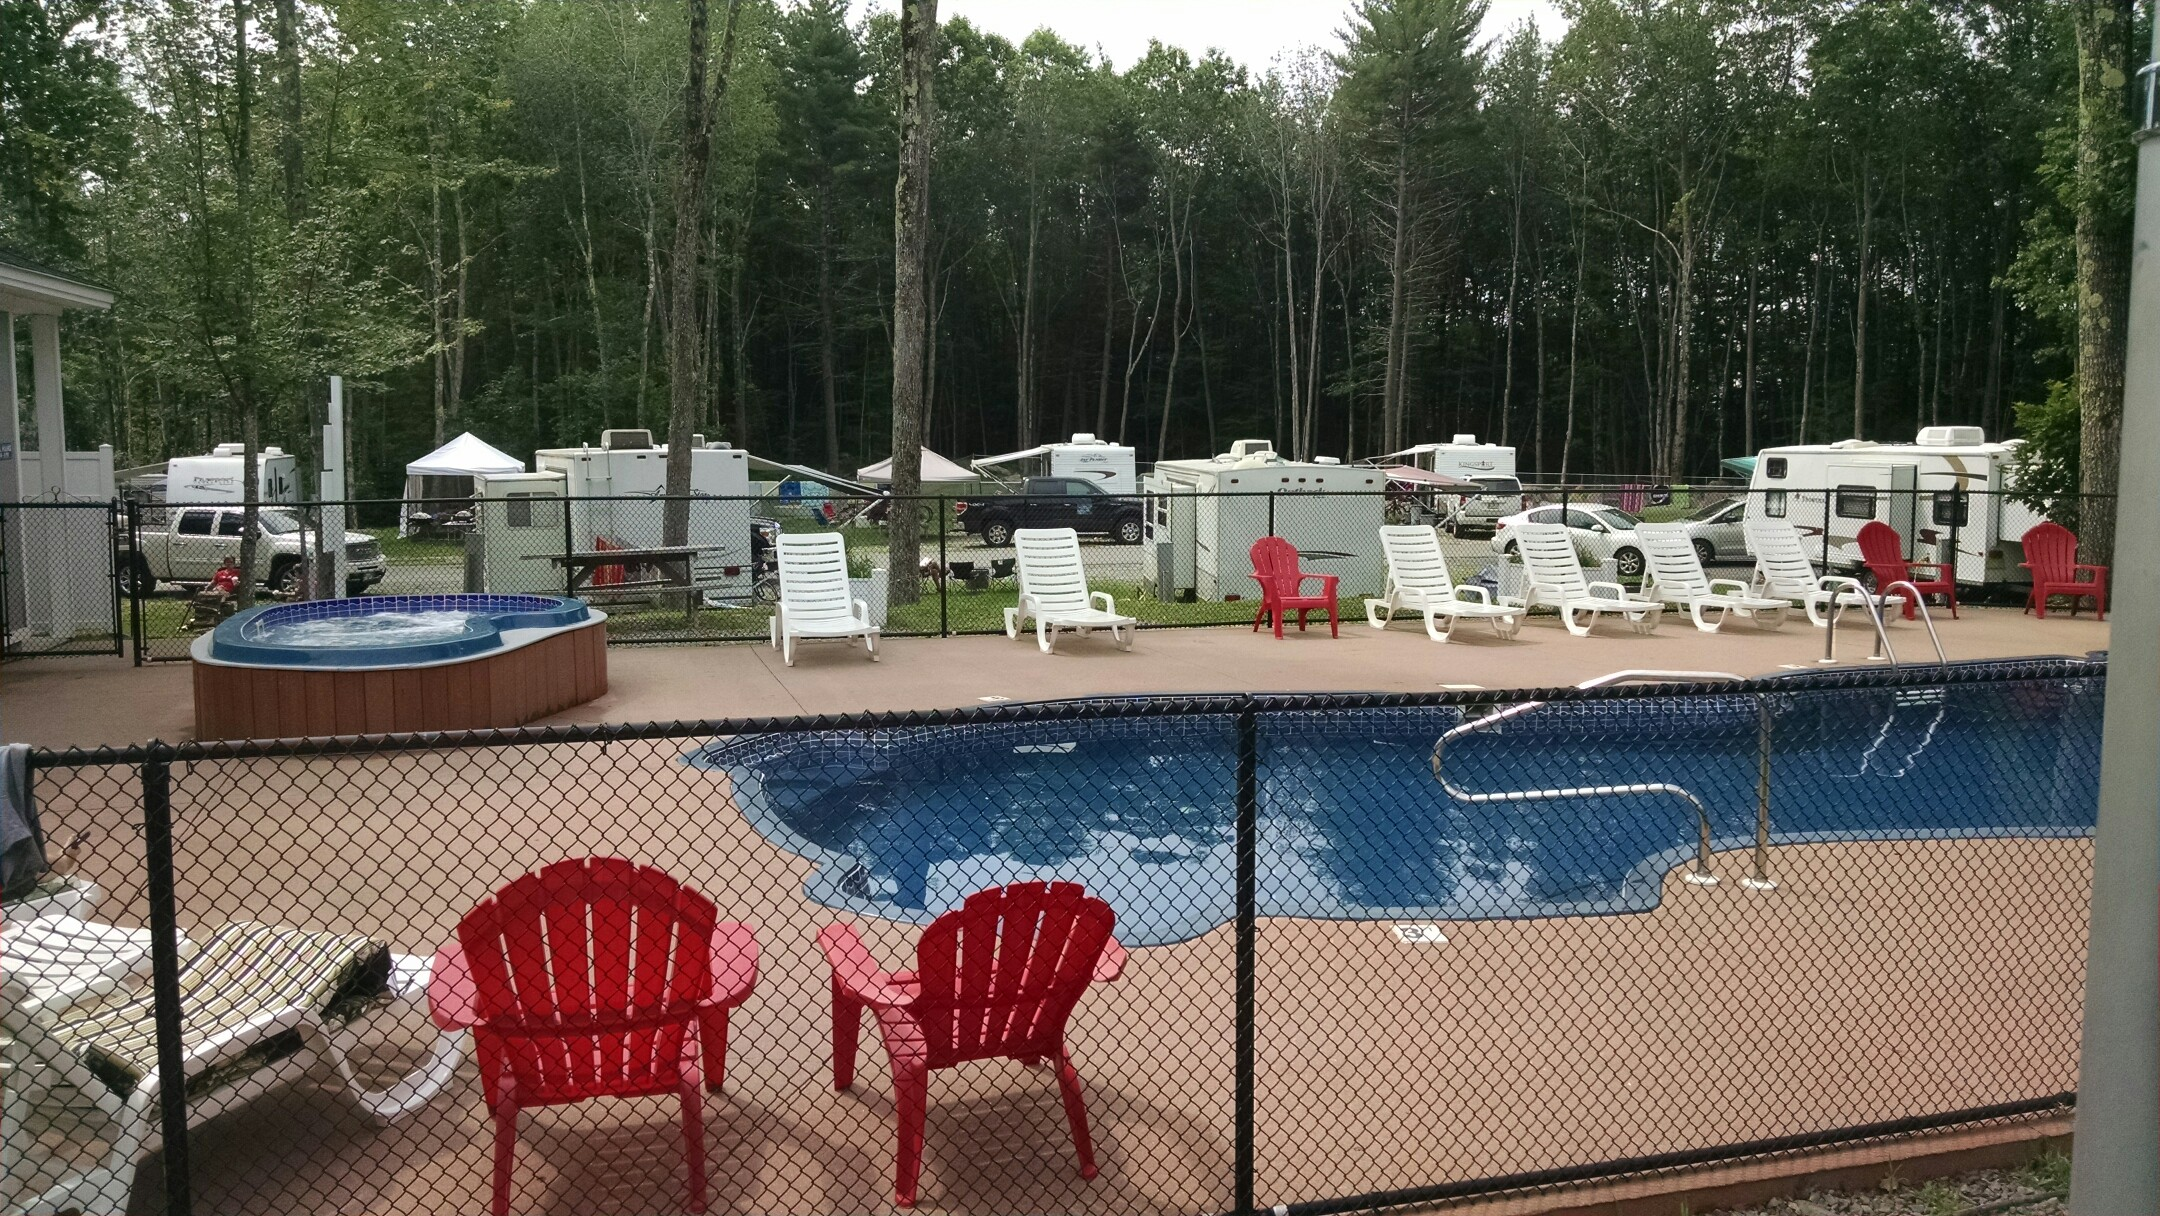 Paradise Park Camp Sites, Old Orchard Beach ME